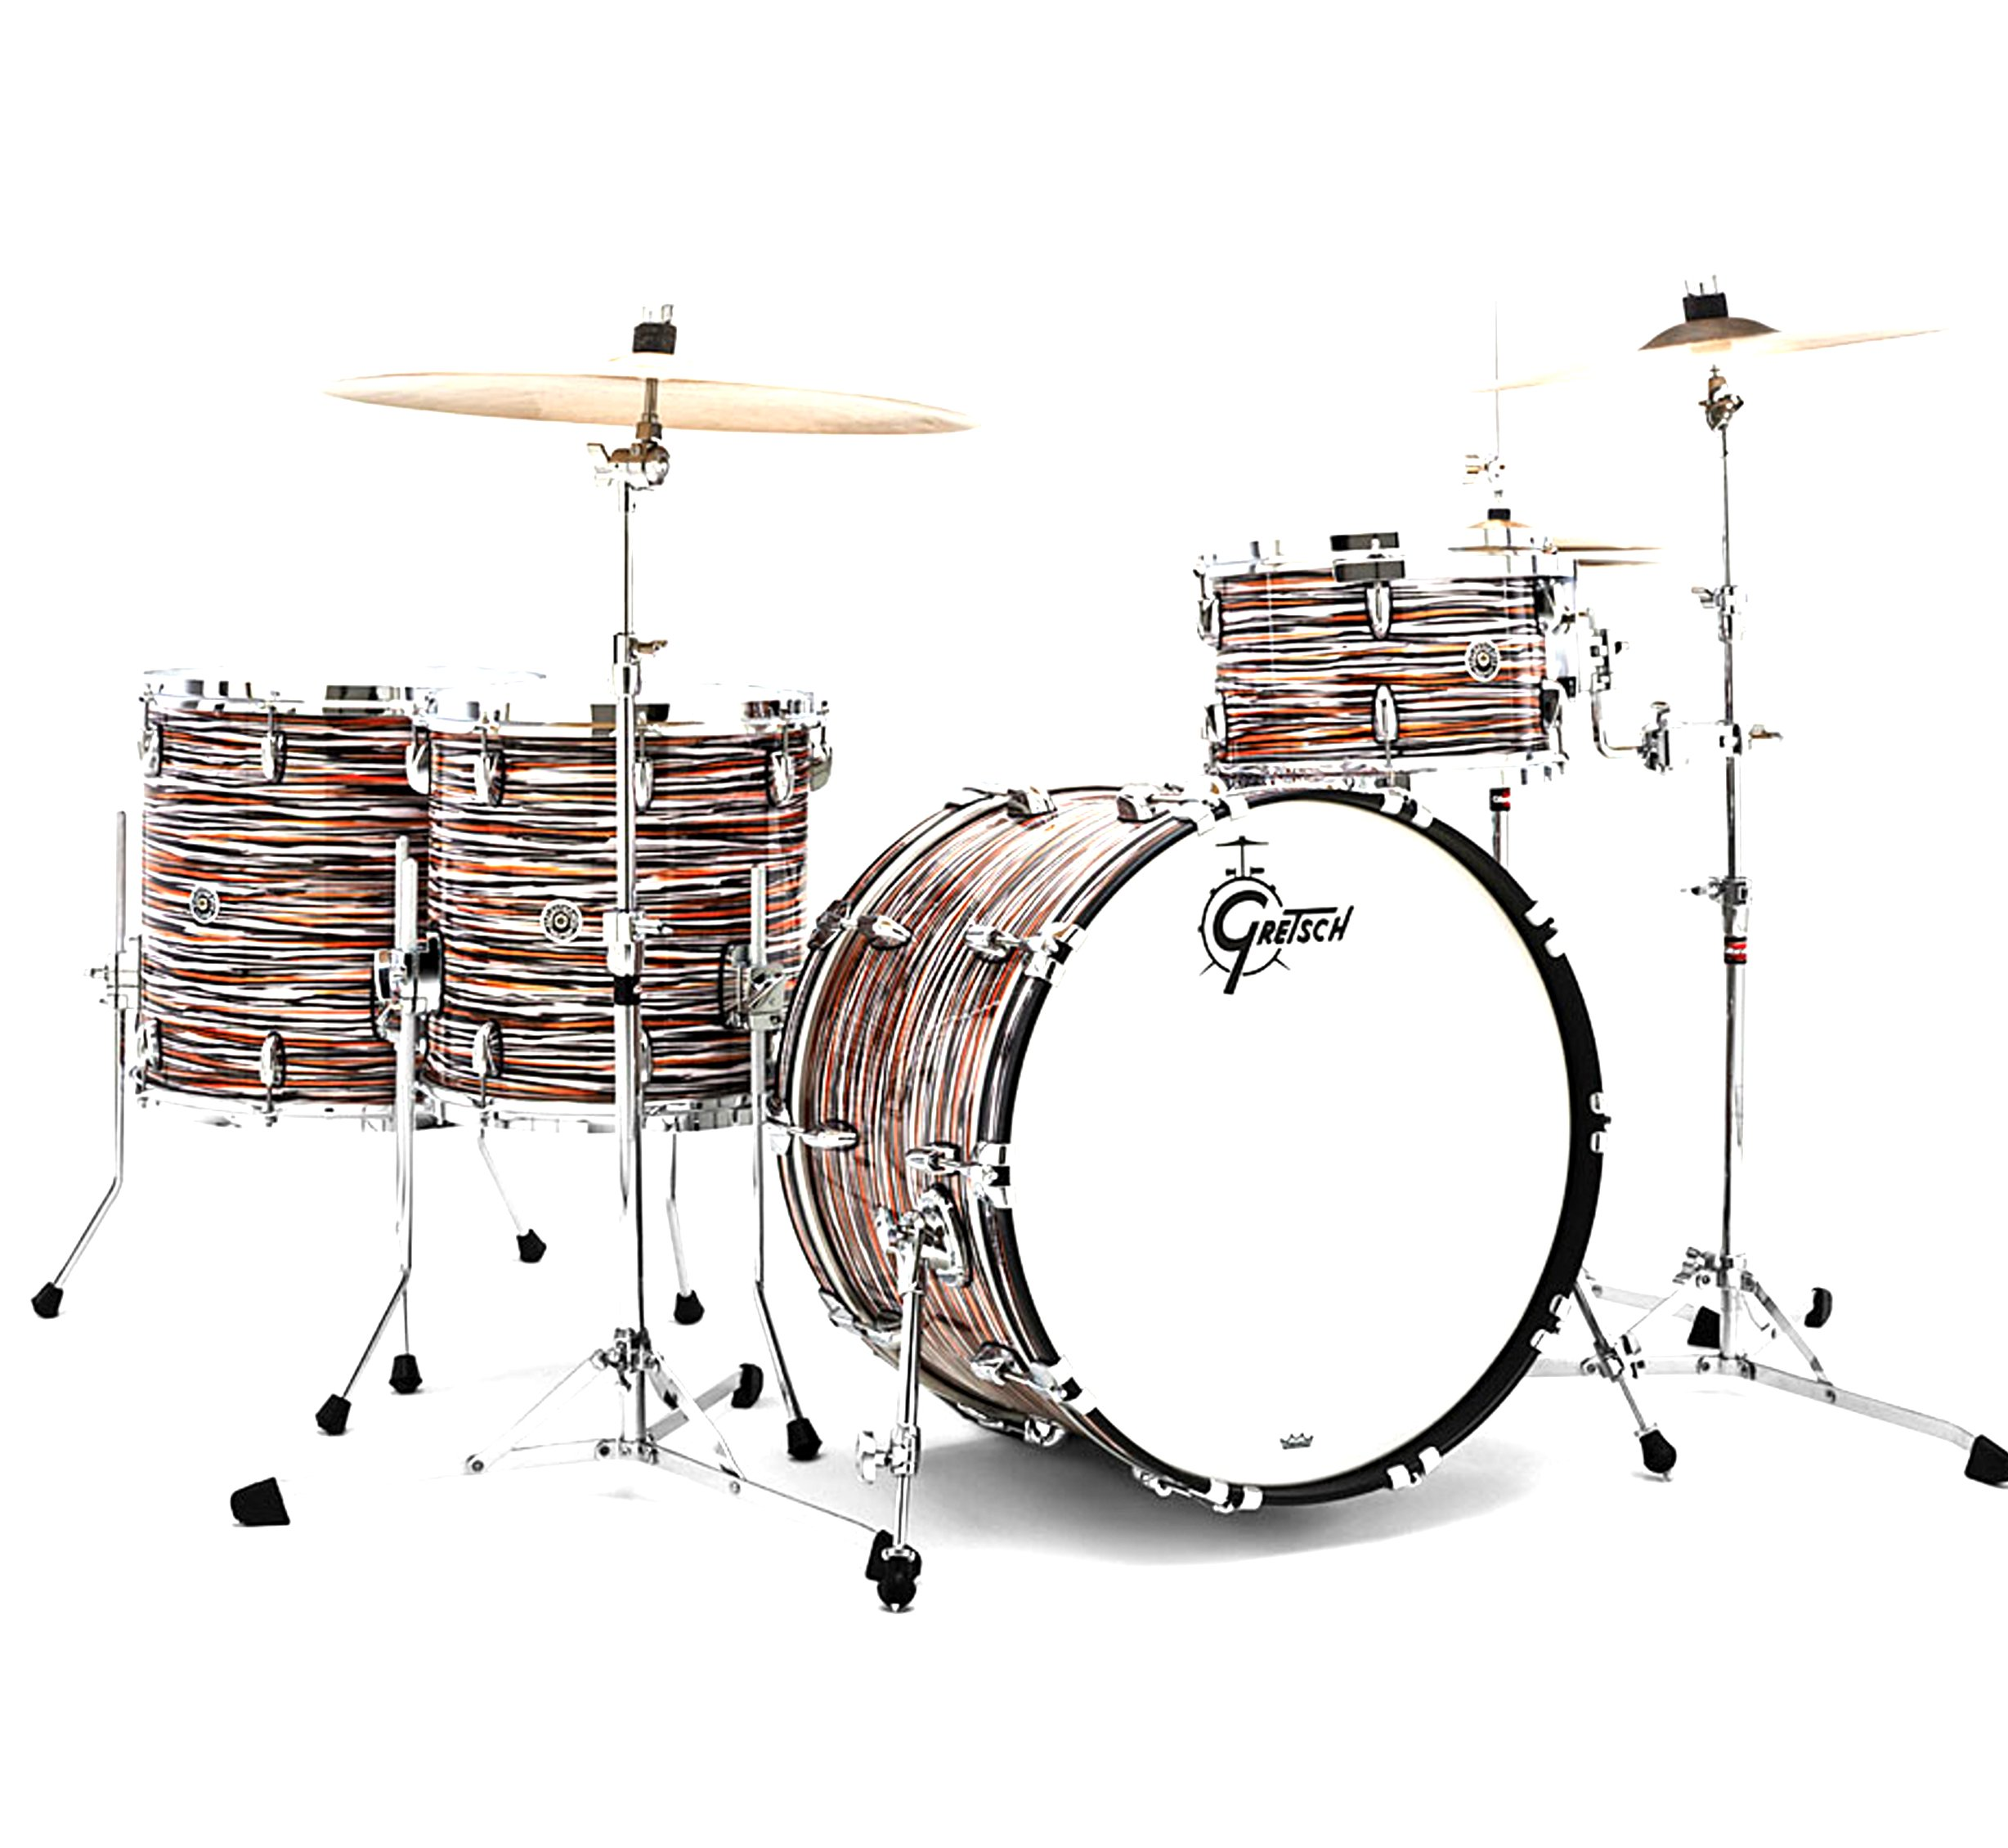 Percussion Gretsch USA Custom Made in USA - Krk